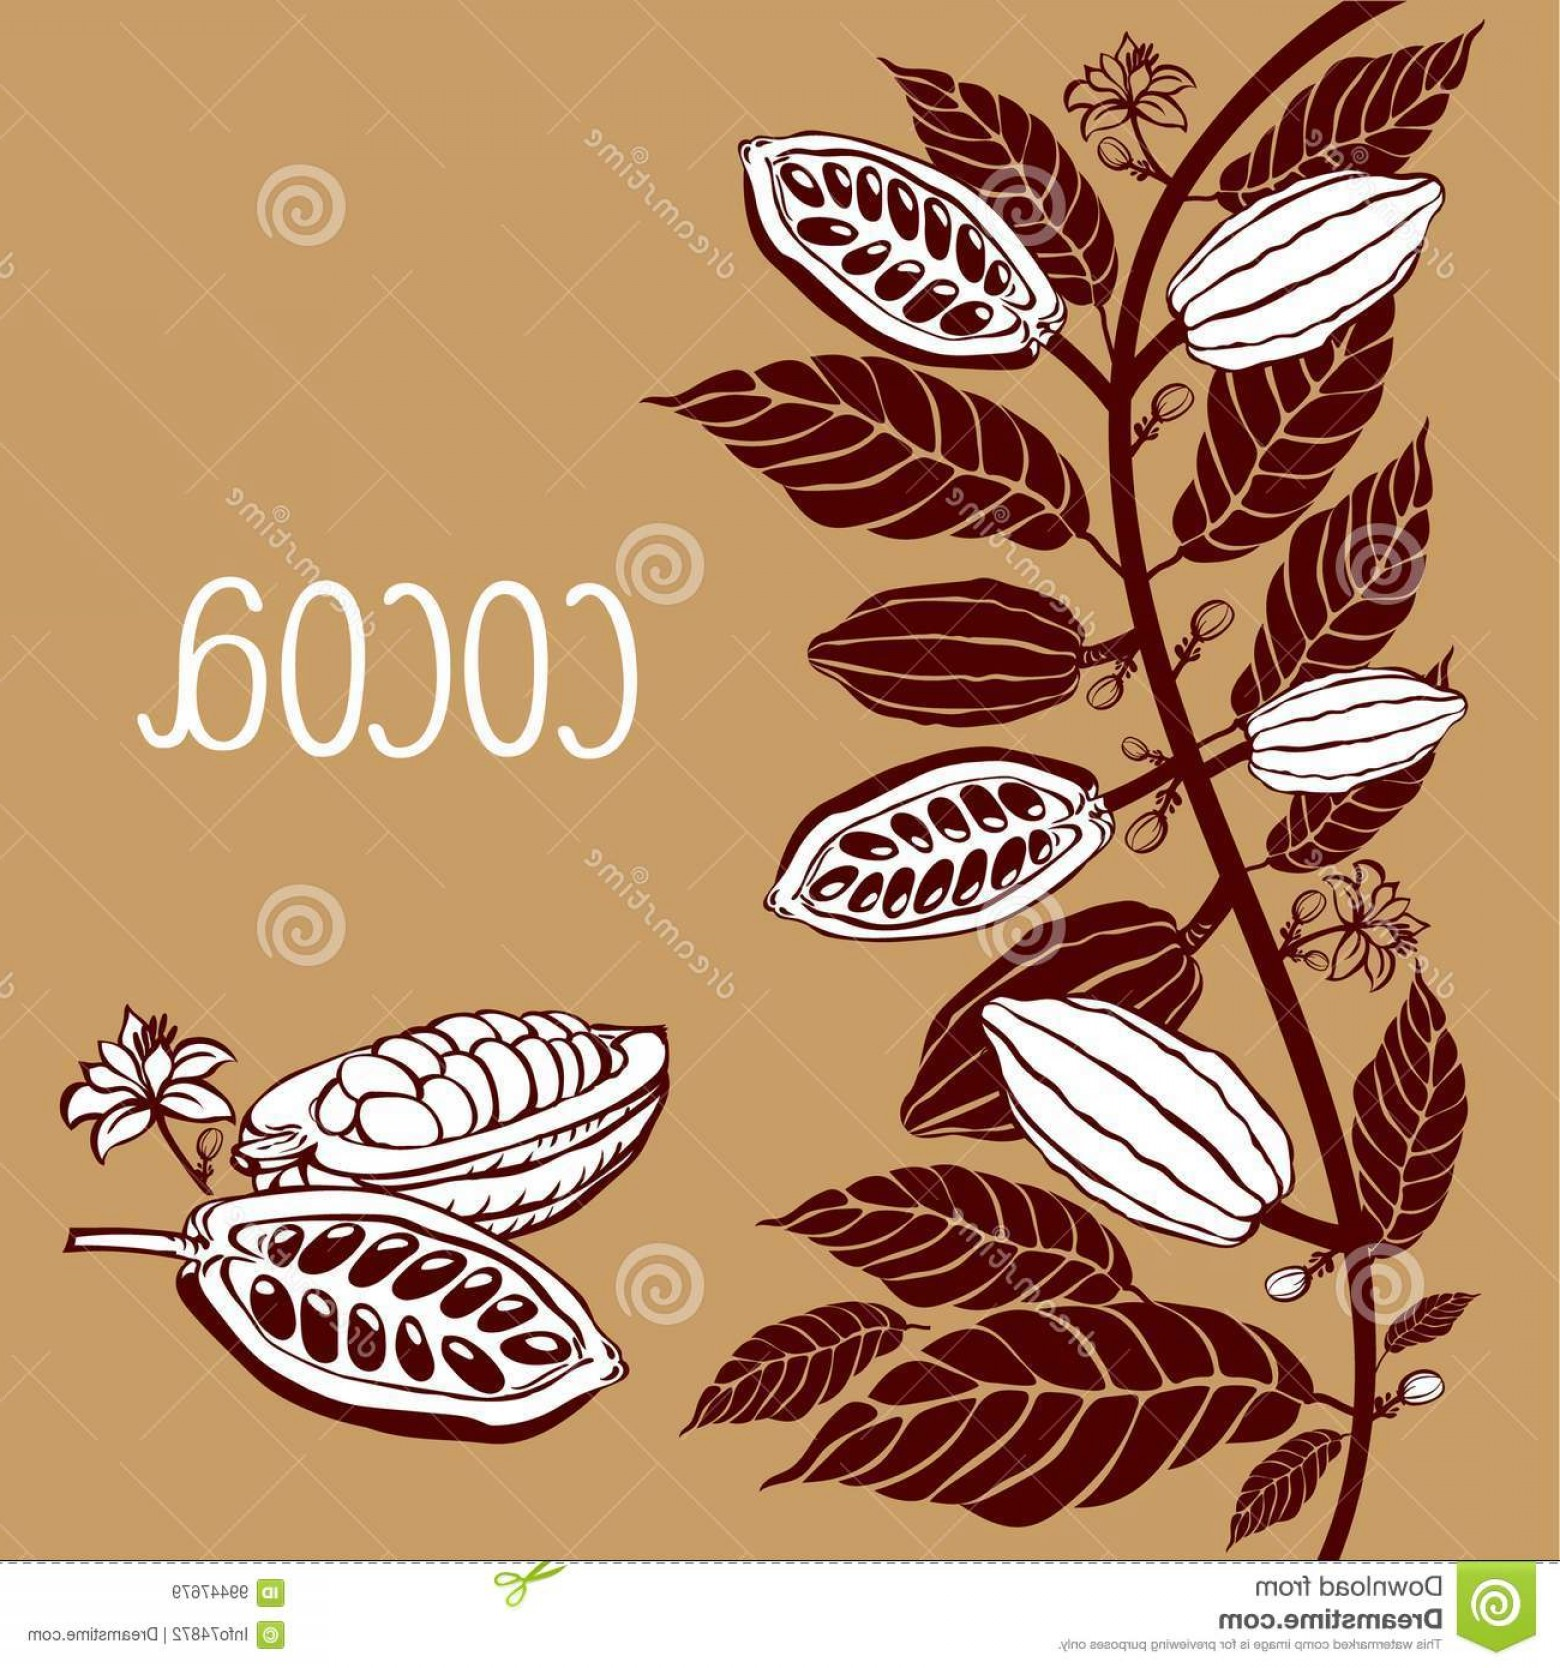 Chocolate Vector Plant: Stock Illustration Template Cacao Beans Leaves Cacao Beans Plant Vector Exotic Cacao Plants Image